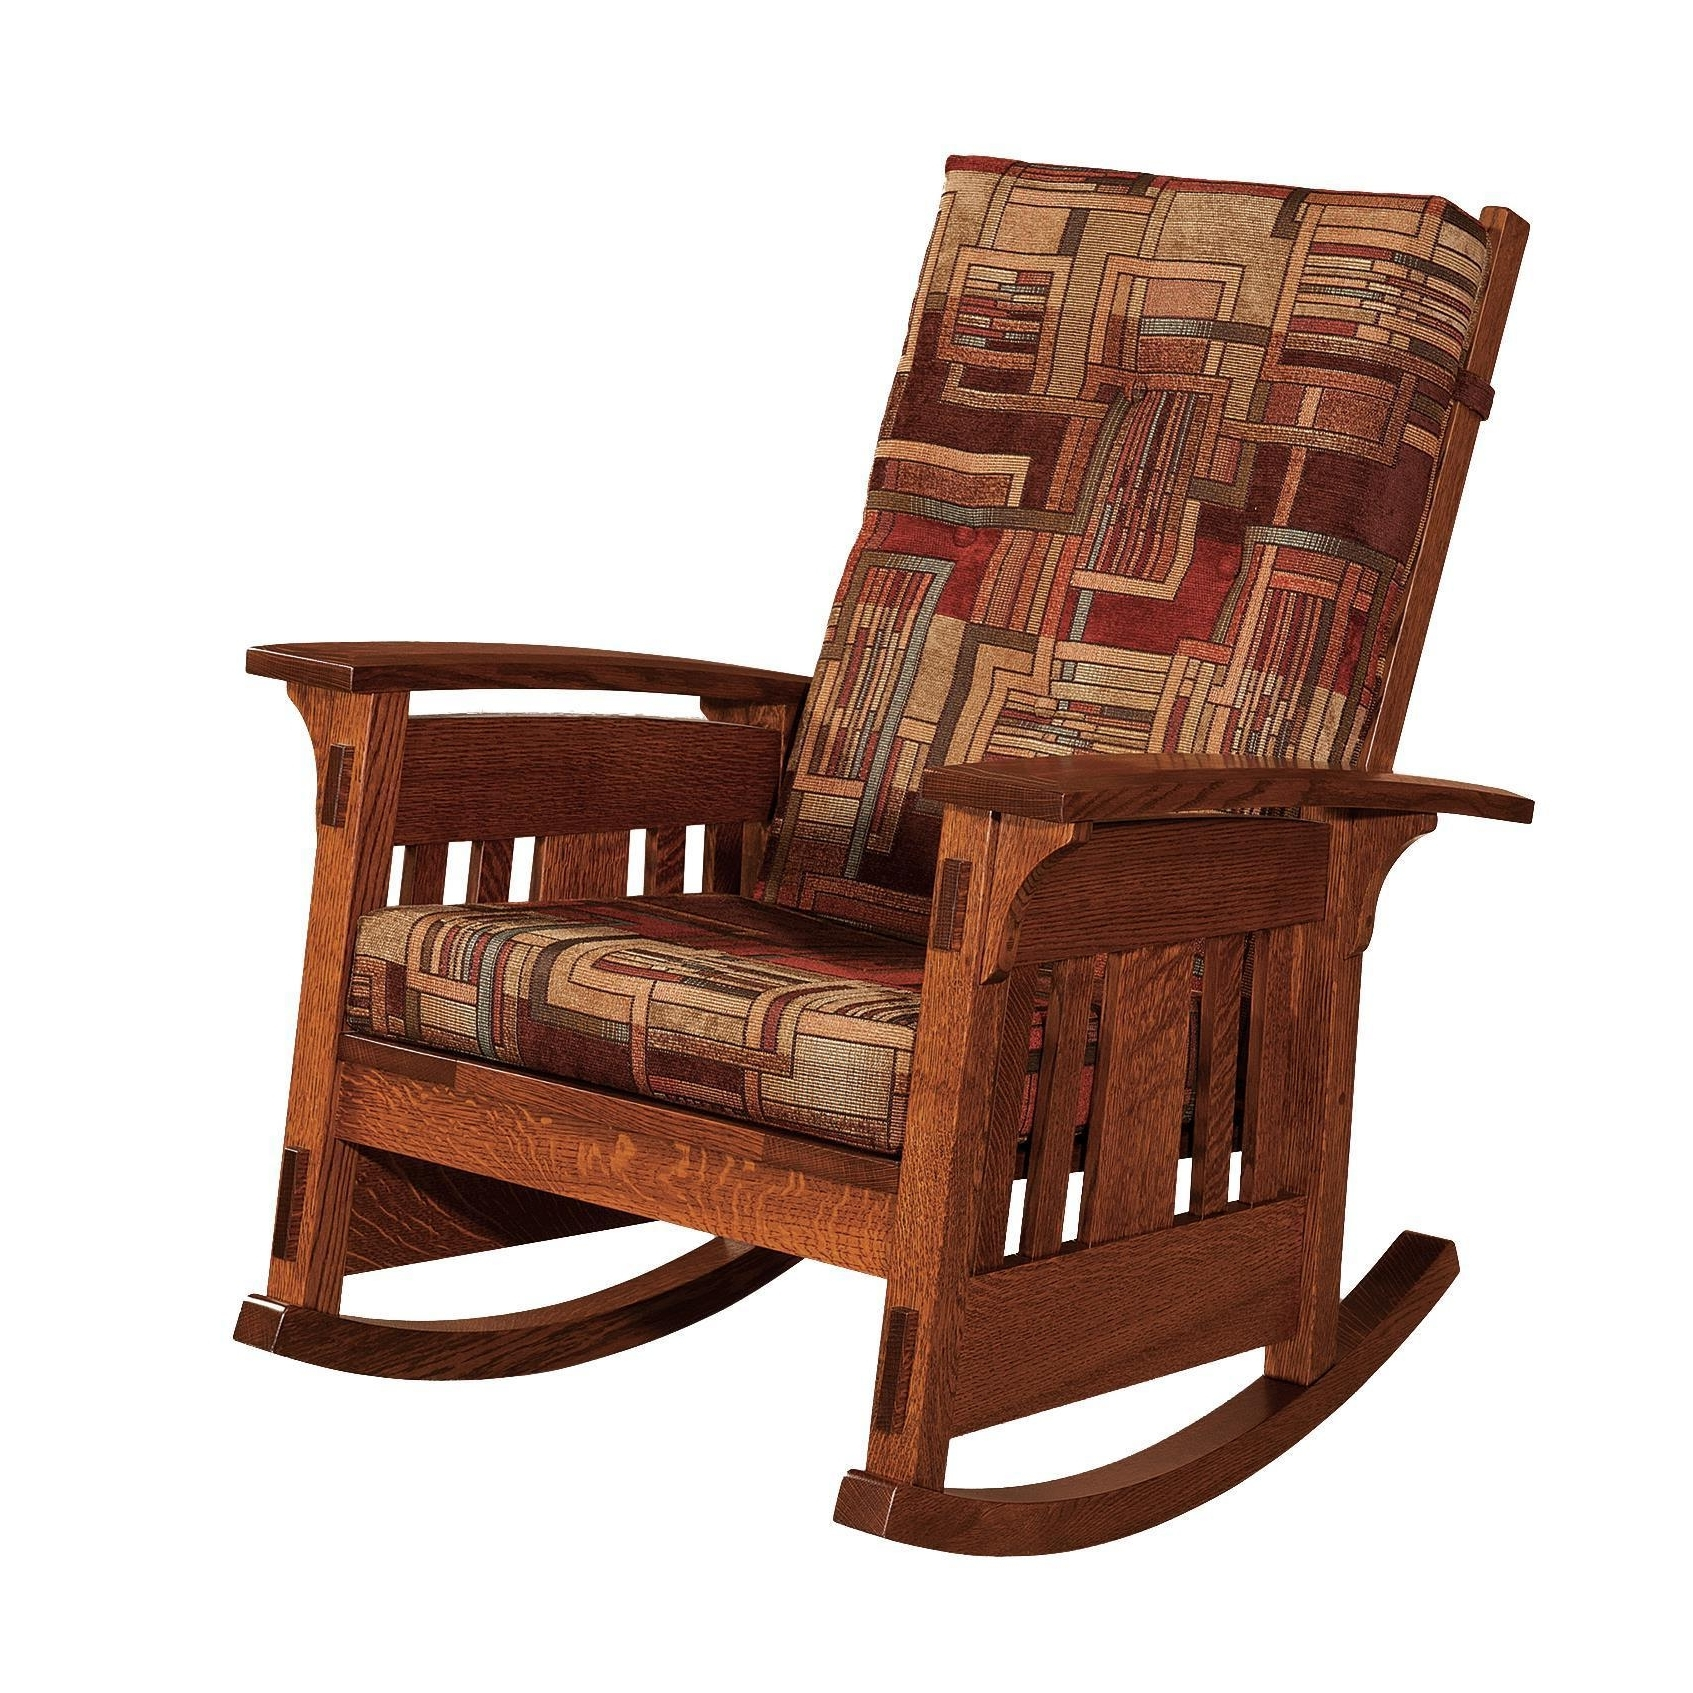 Upholstered Rocking Chairs Pertaining To 2018 Mccoy Mission Upholstered Rocking Chair From Dutchcrafters Amish (View 15 of 20)